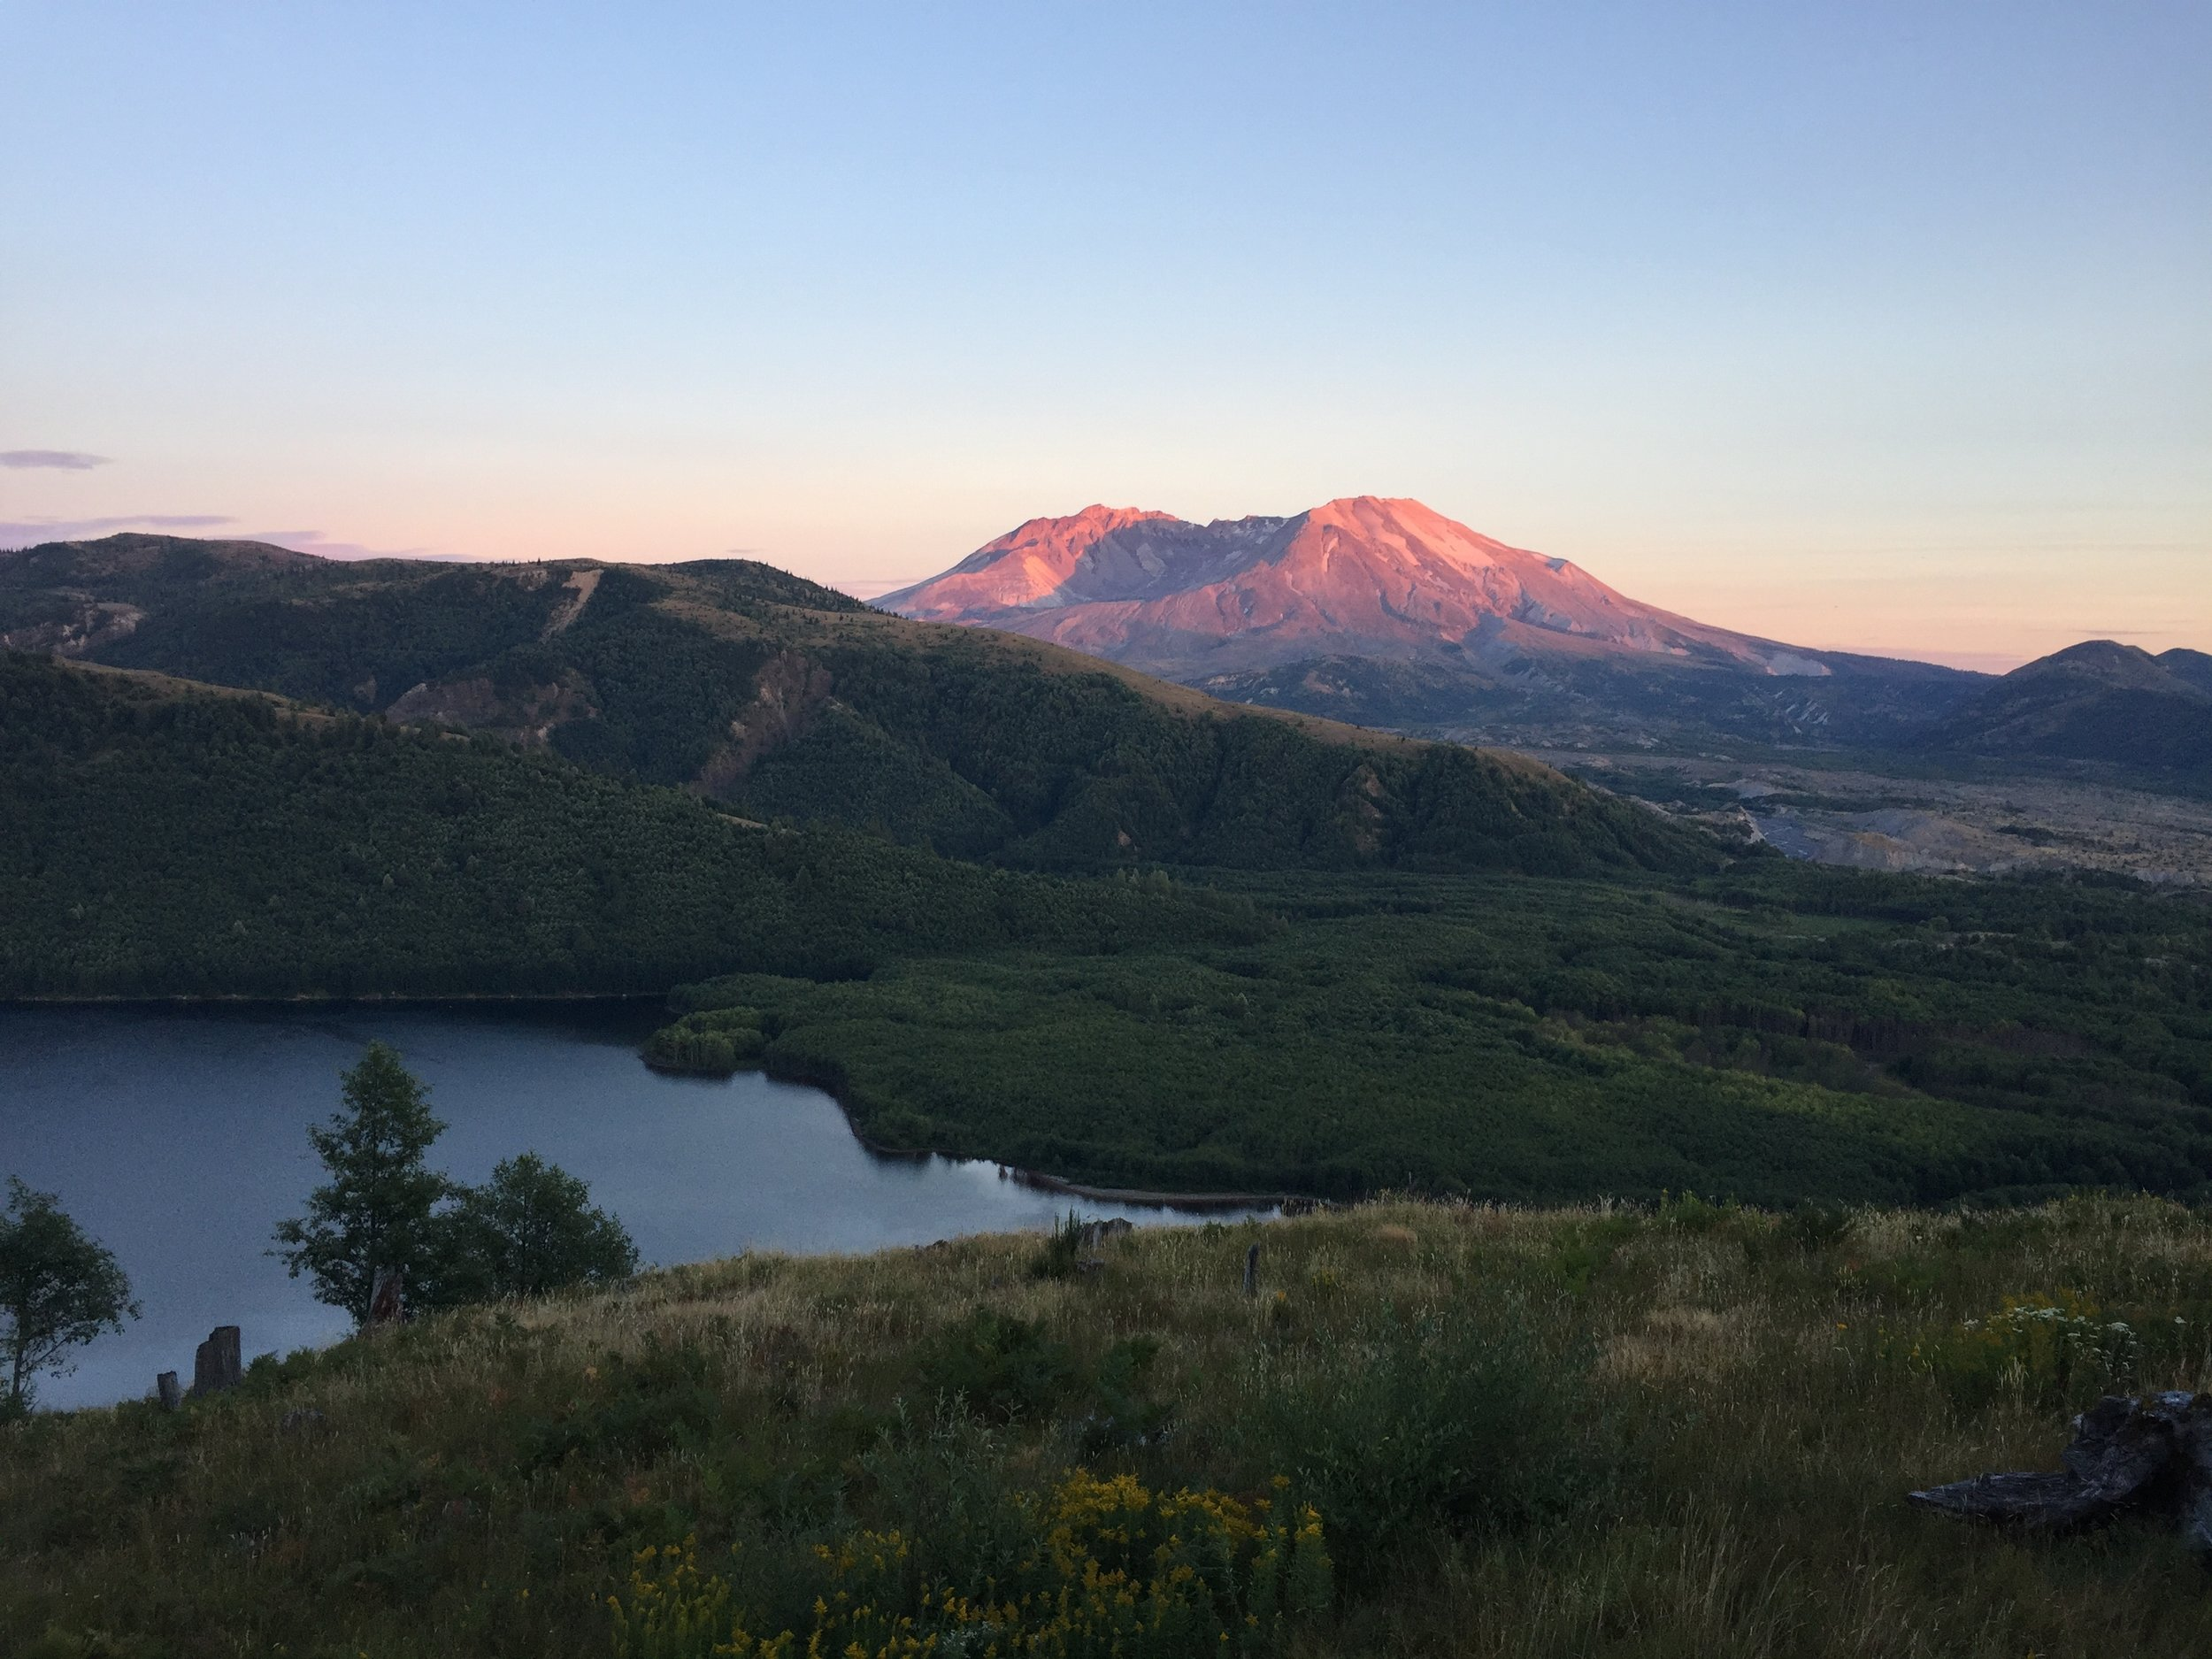 Alpenglow on Mount St. Helens. Coldwater Lake below. View from the deck of the Mount St. Helens Science and Learning Center.